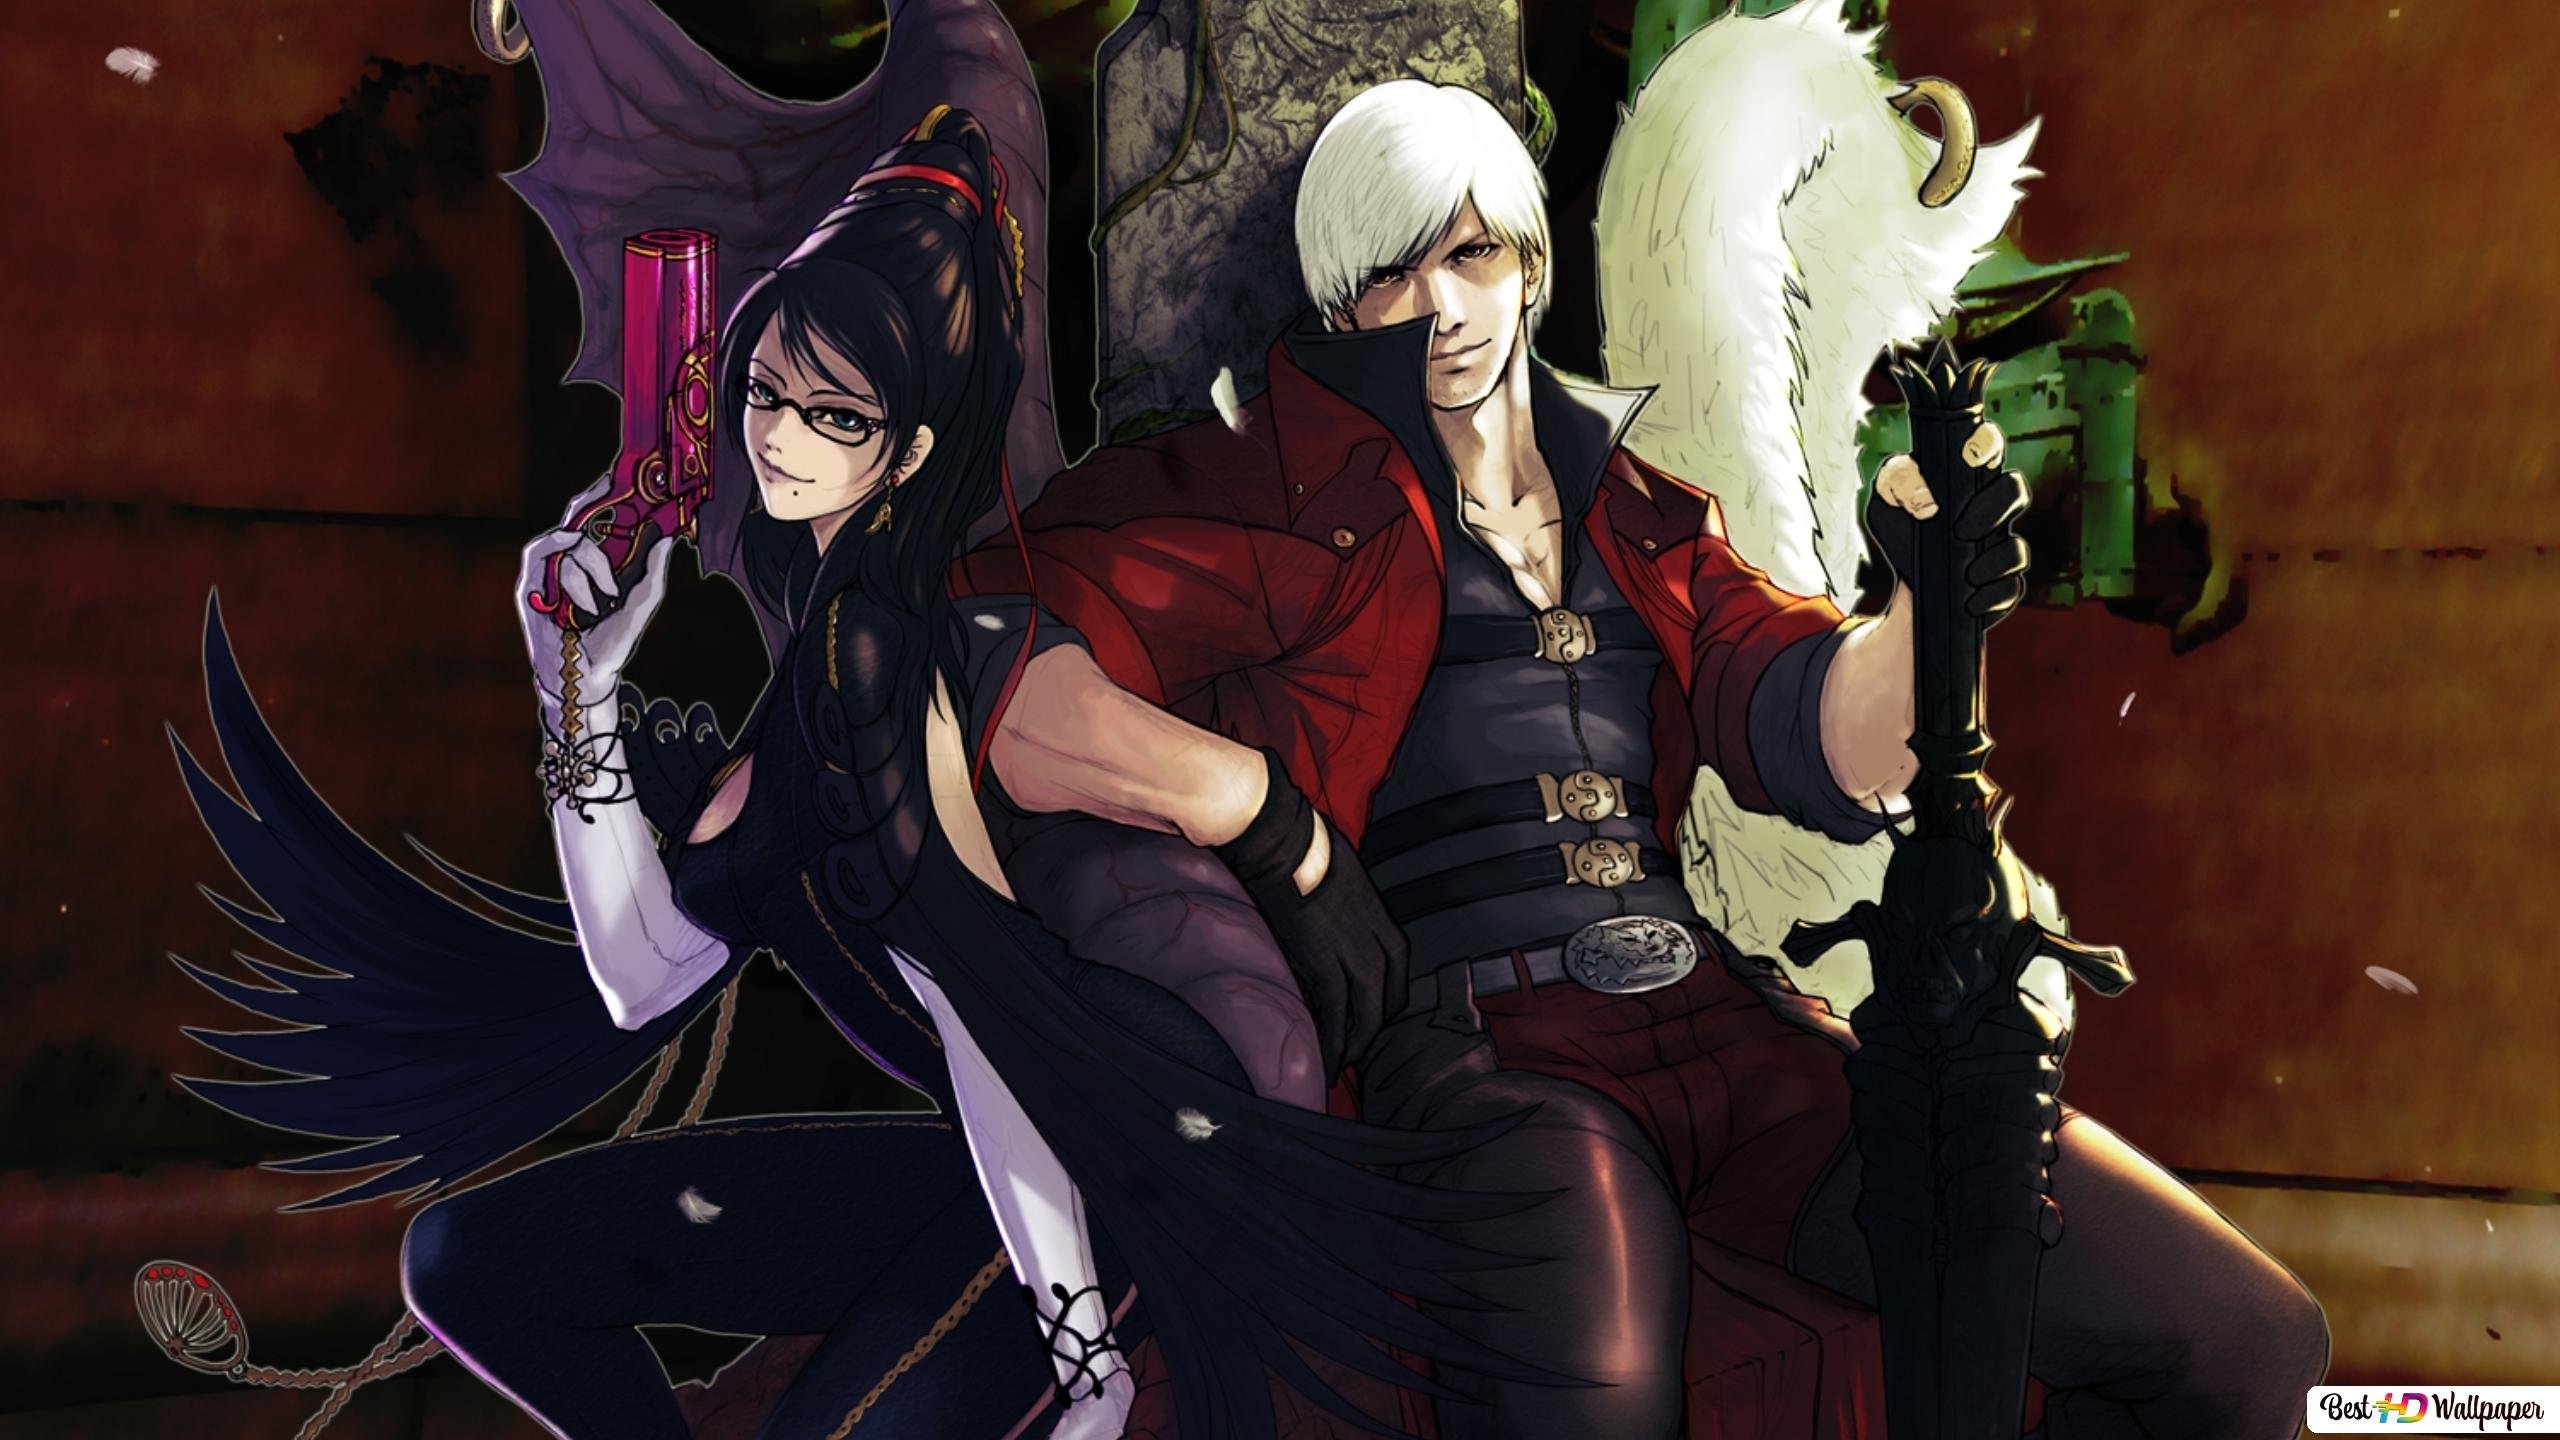 Devil May Cry Anime Character Hd Wallpaper Download